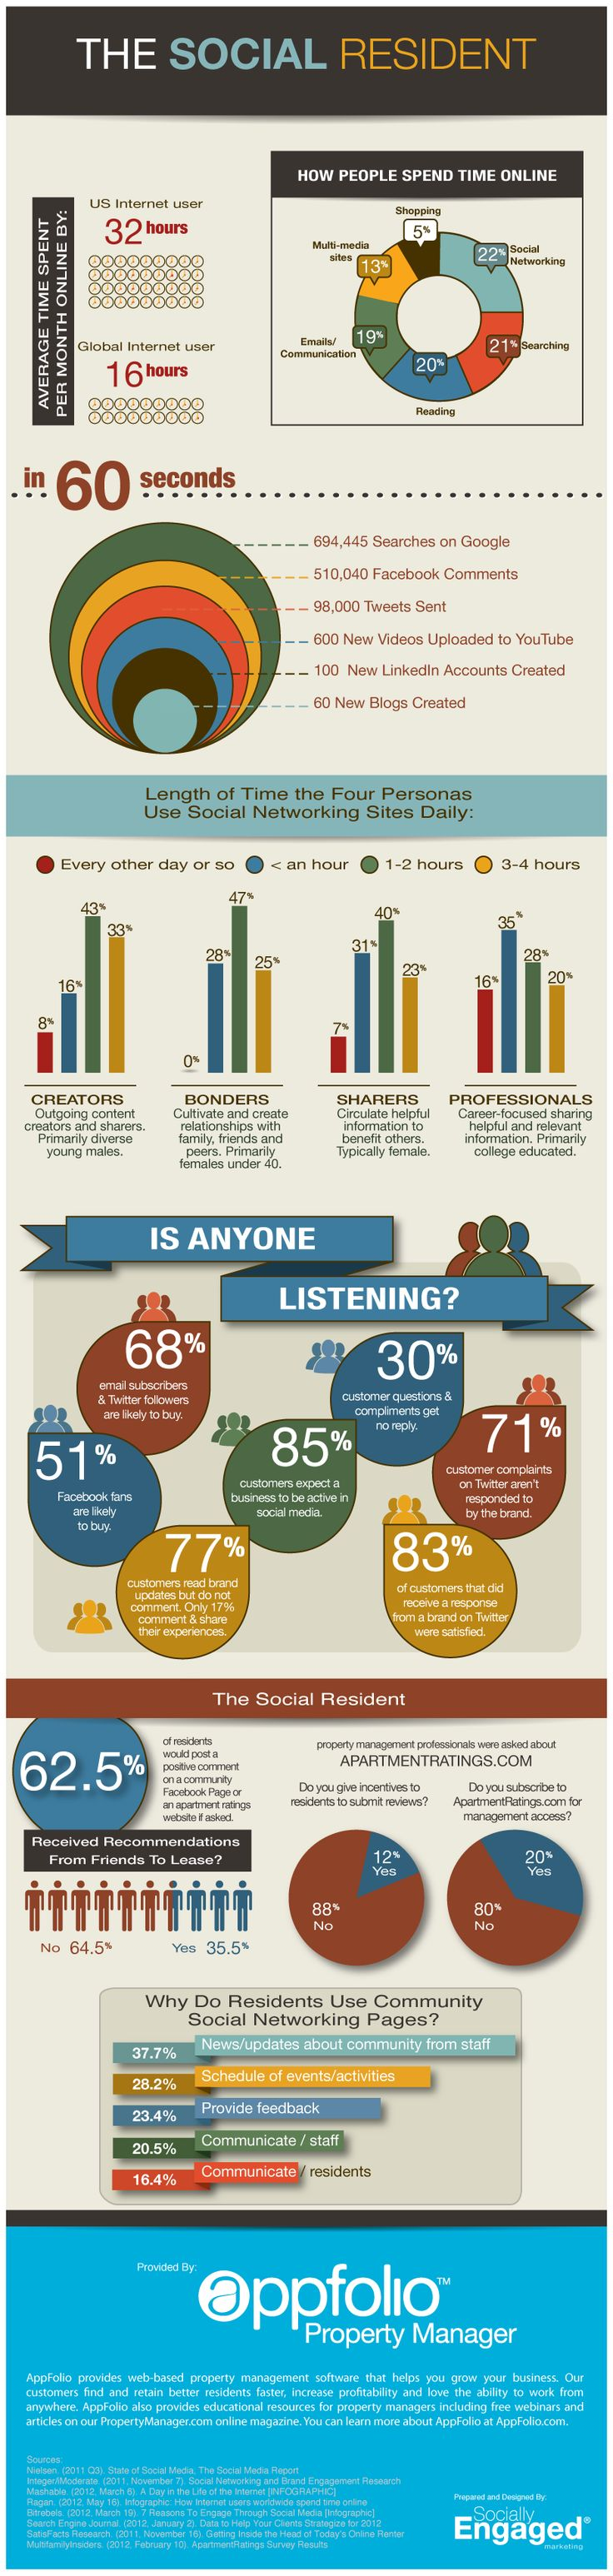 The Social Resident Infographic 30 best Property